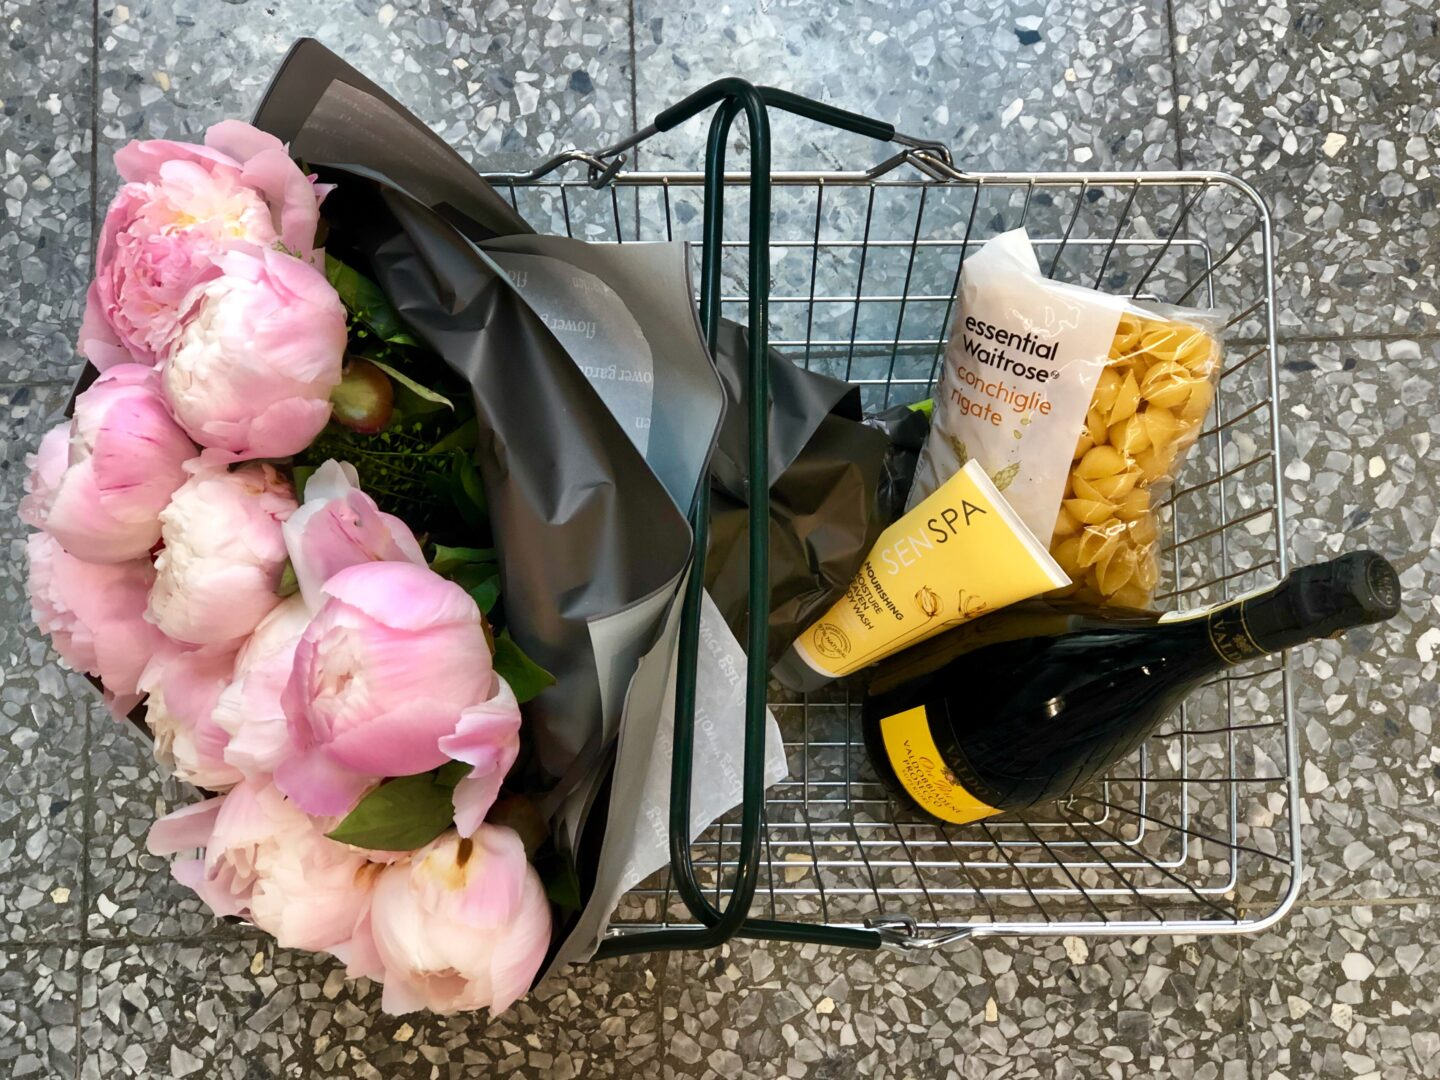 A shopping basket with flowers, body cream, pasta and prosecco